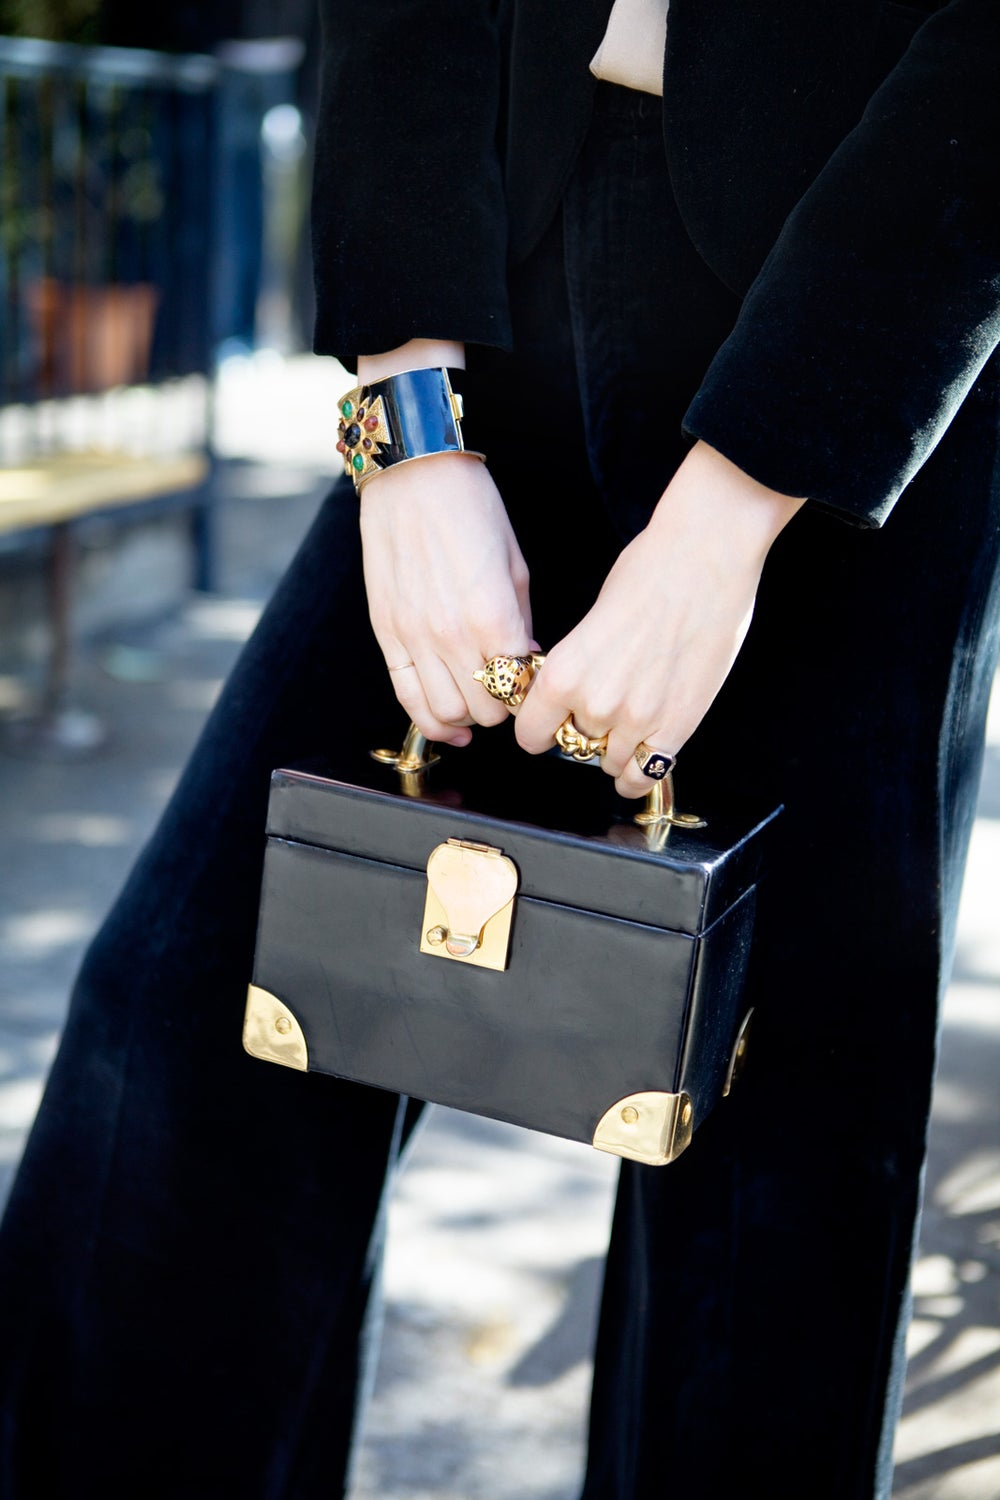 The bag is a vintage Koret bag. Her cuff is by Ciner.